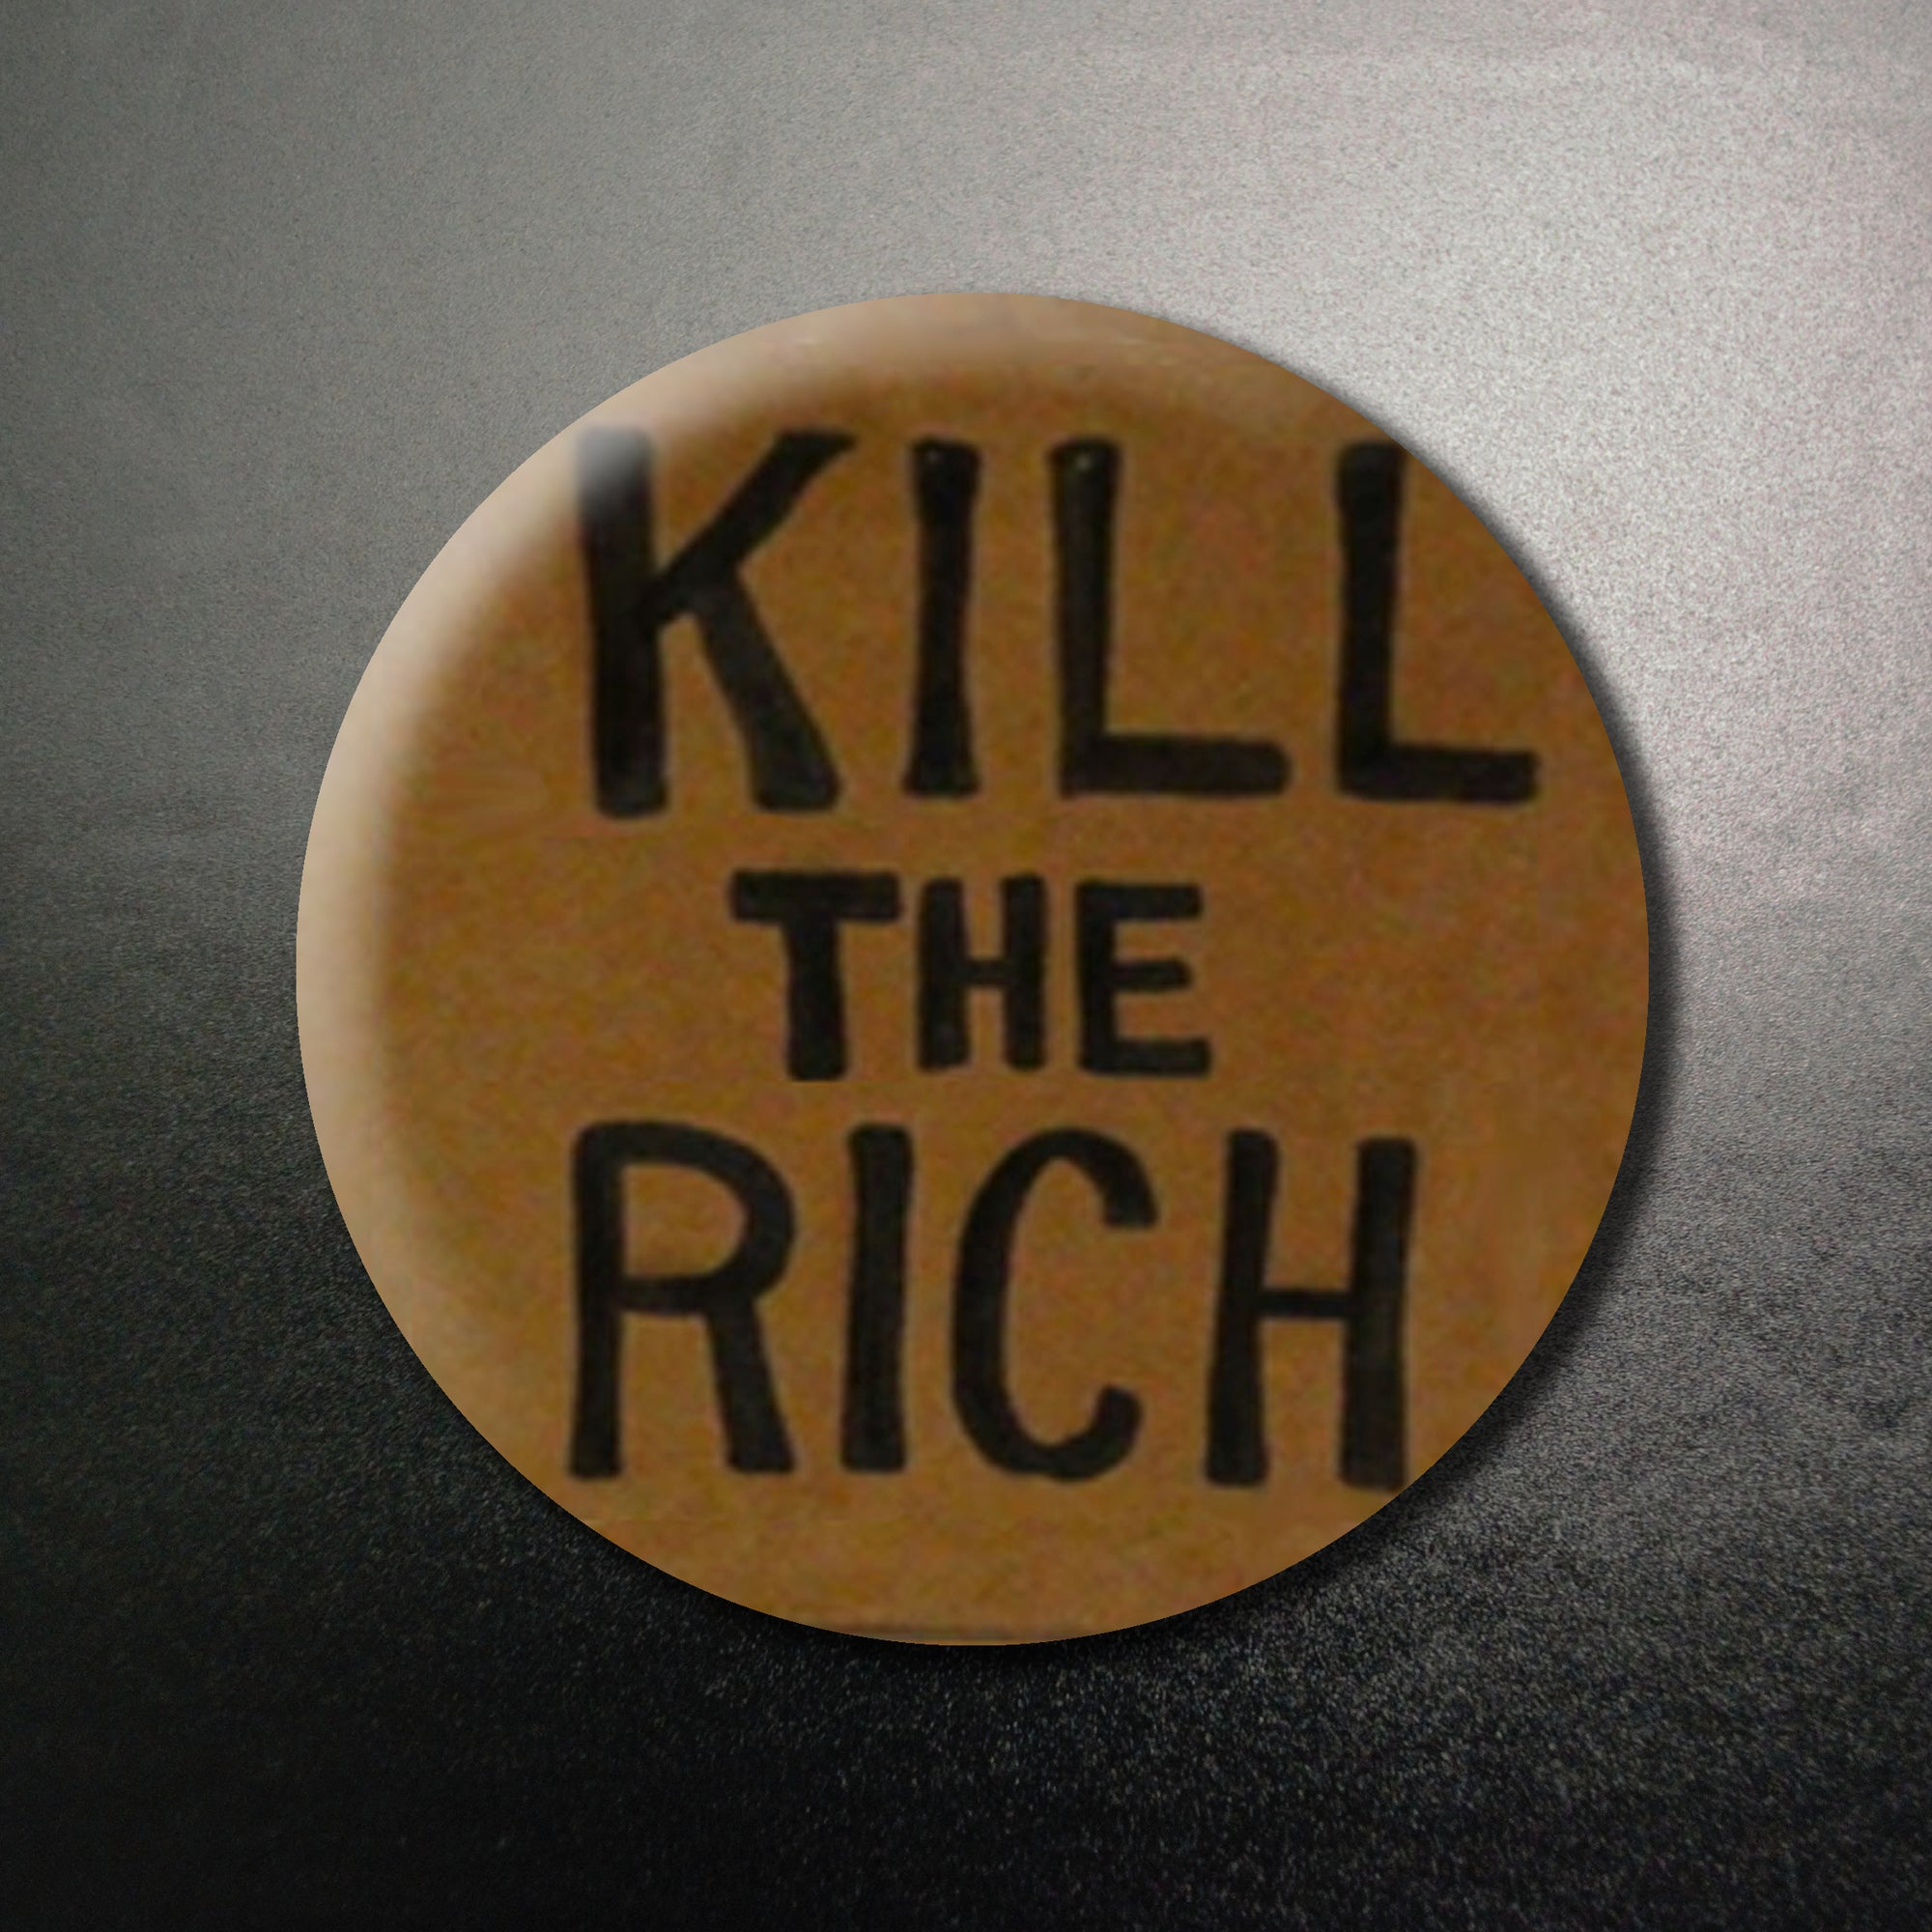 Kill the Rich (2) 1.25 inch Pinback Button or Magnet